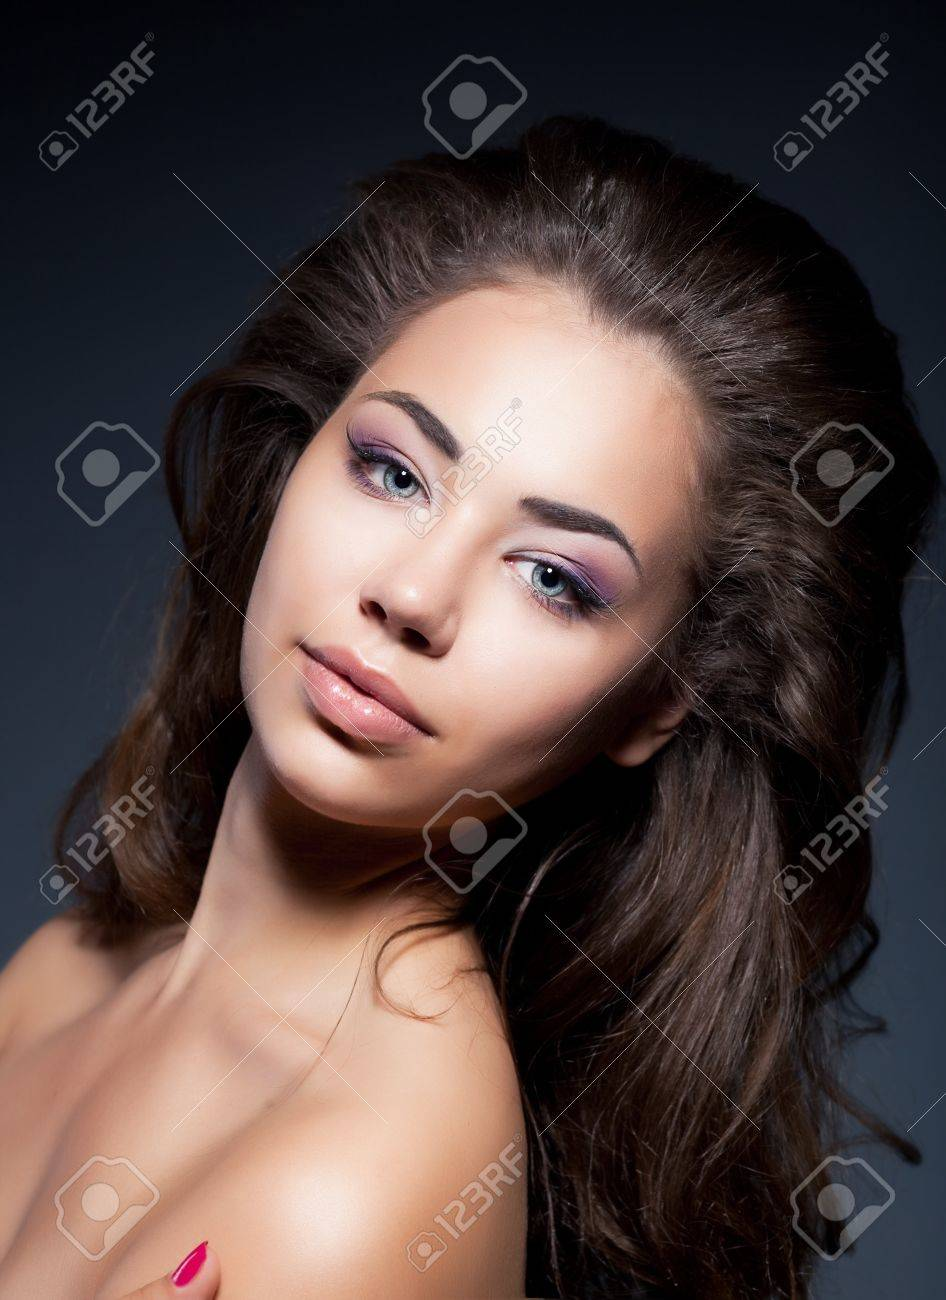 Attractive beauty young woman portrait isolated on black background Stock Photo - 15037332